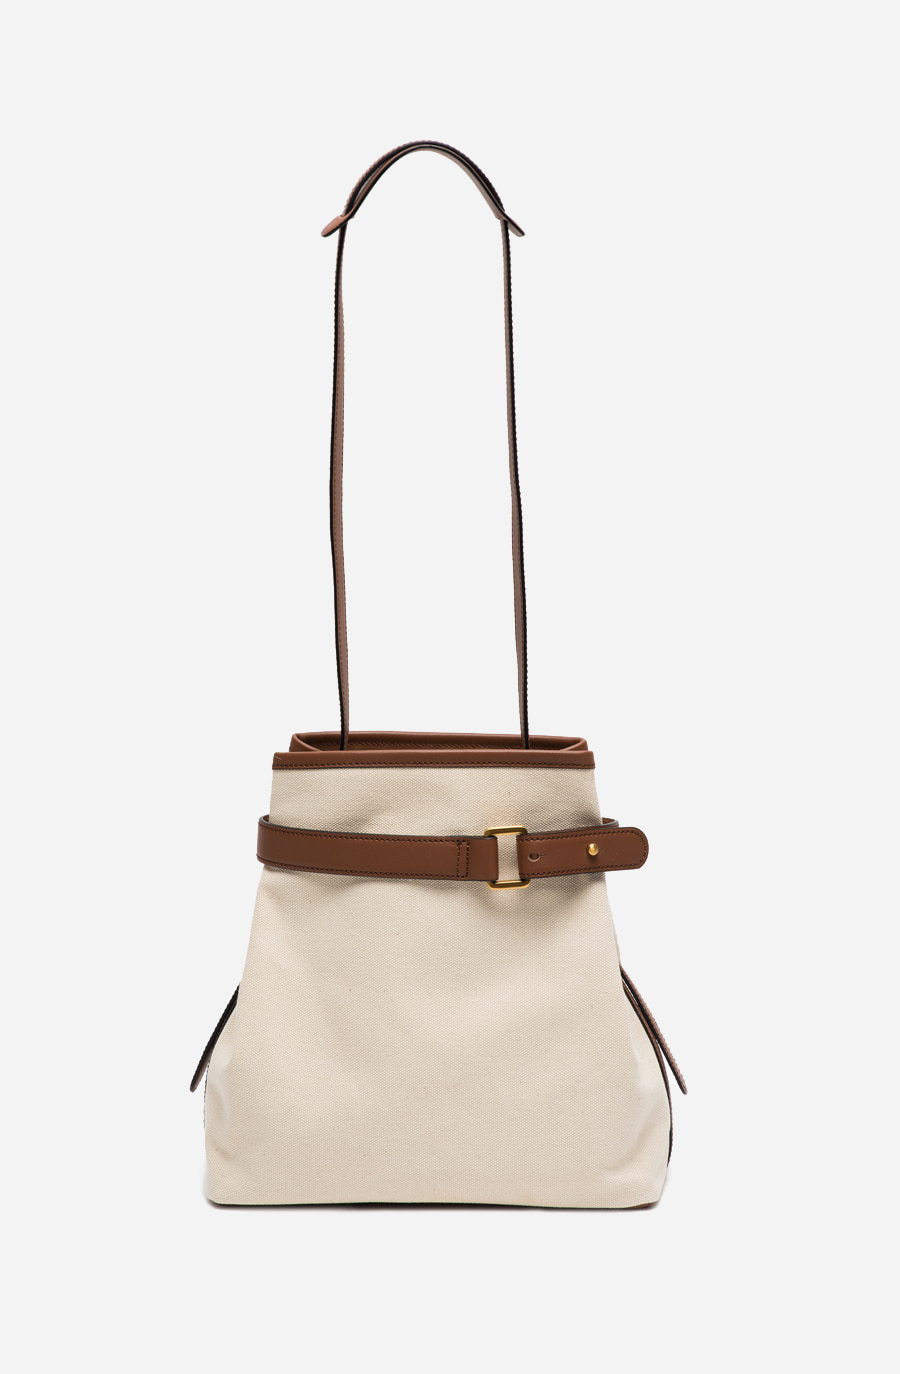 LIGNE BAG (brown)